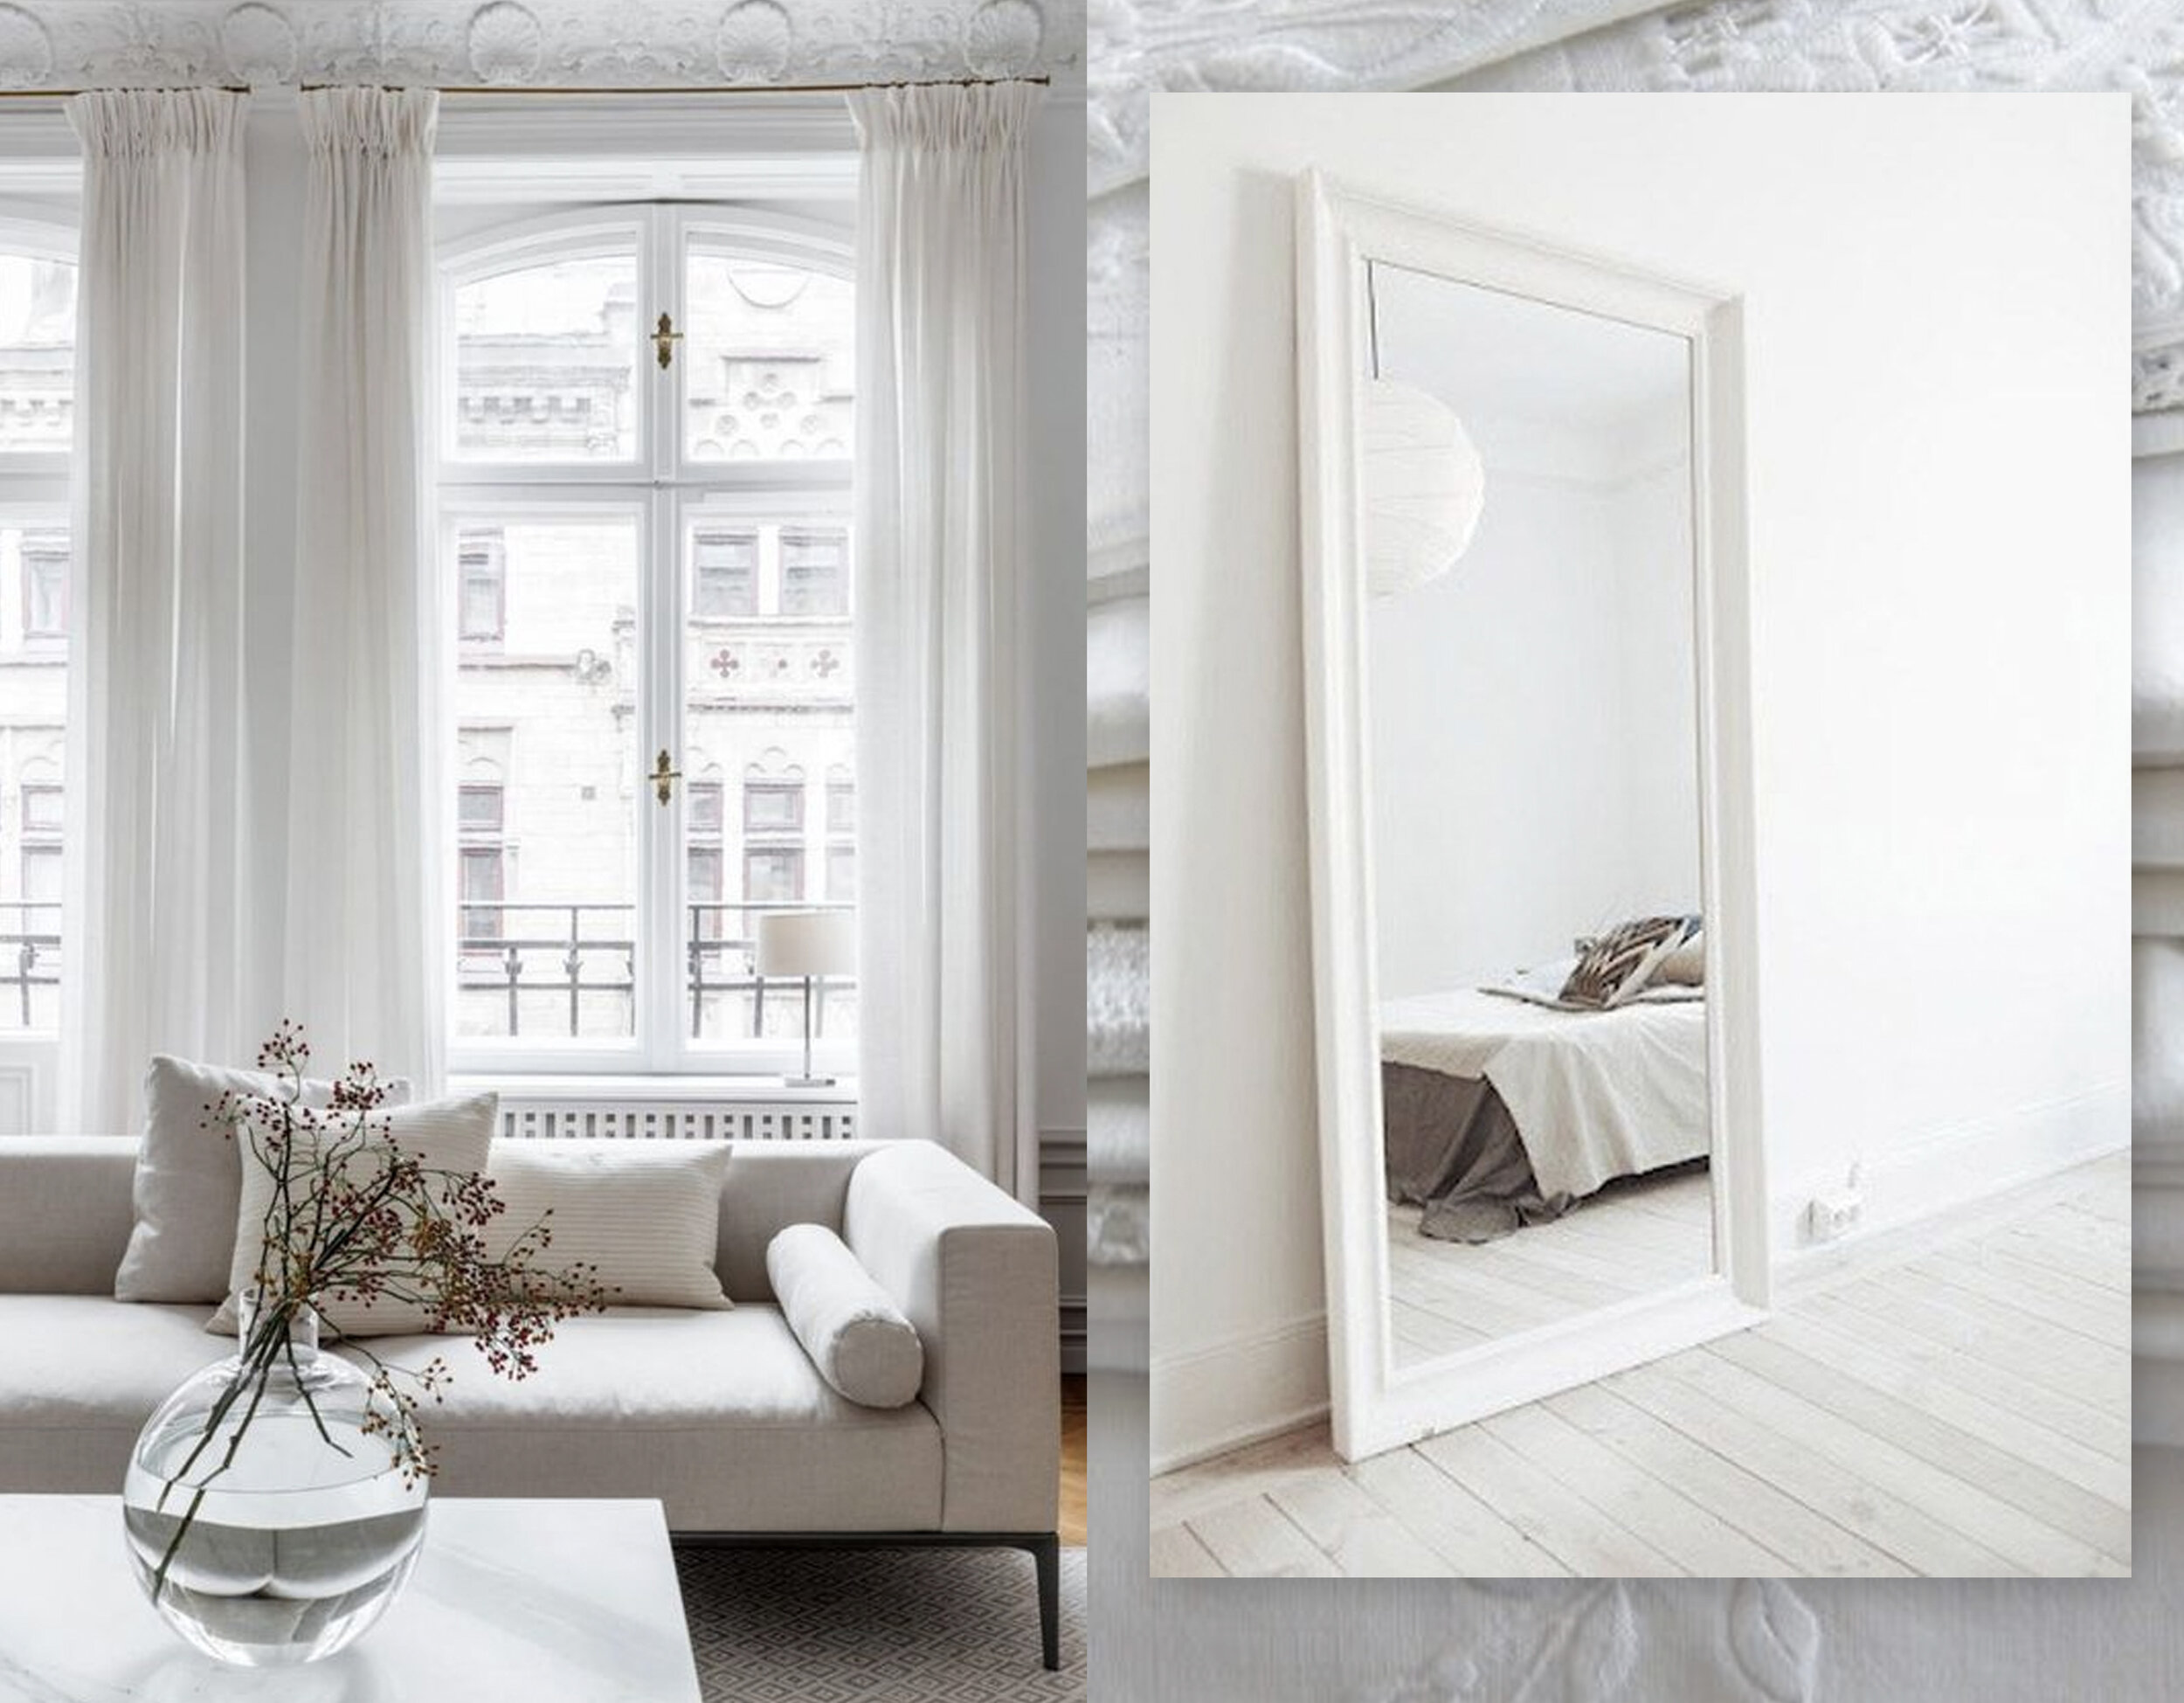 living room via  Nordic Design  - image with mirror via  Could I have That  - linen in the back via  Artisans List